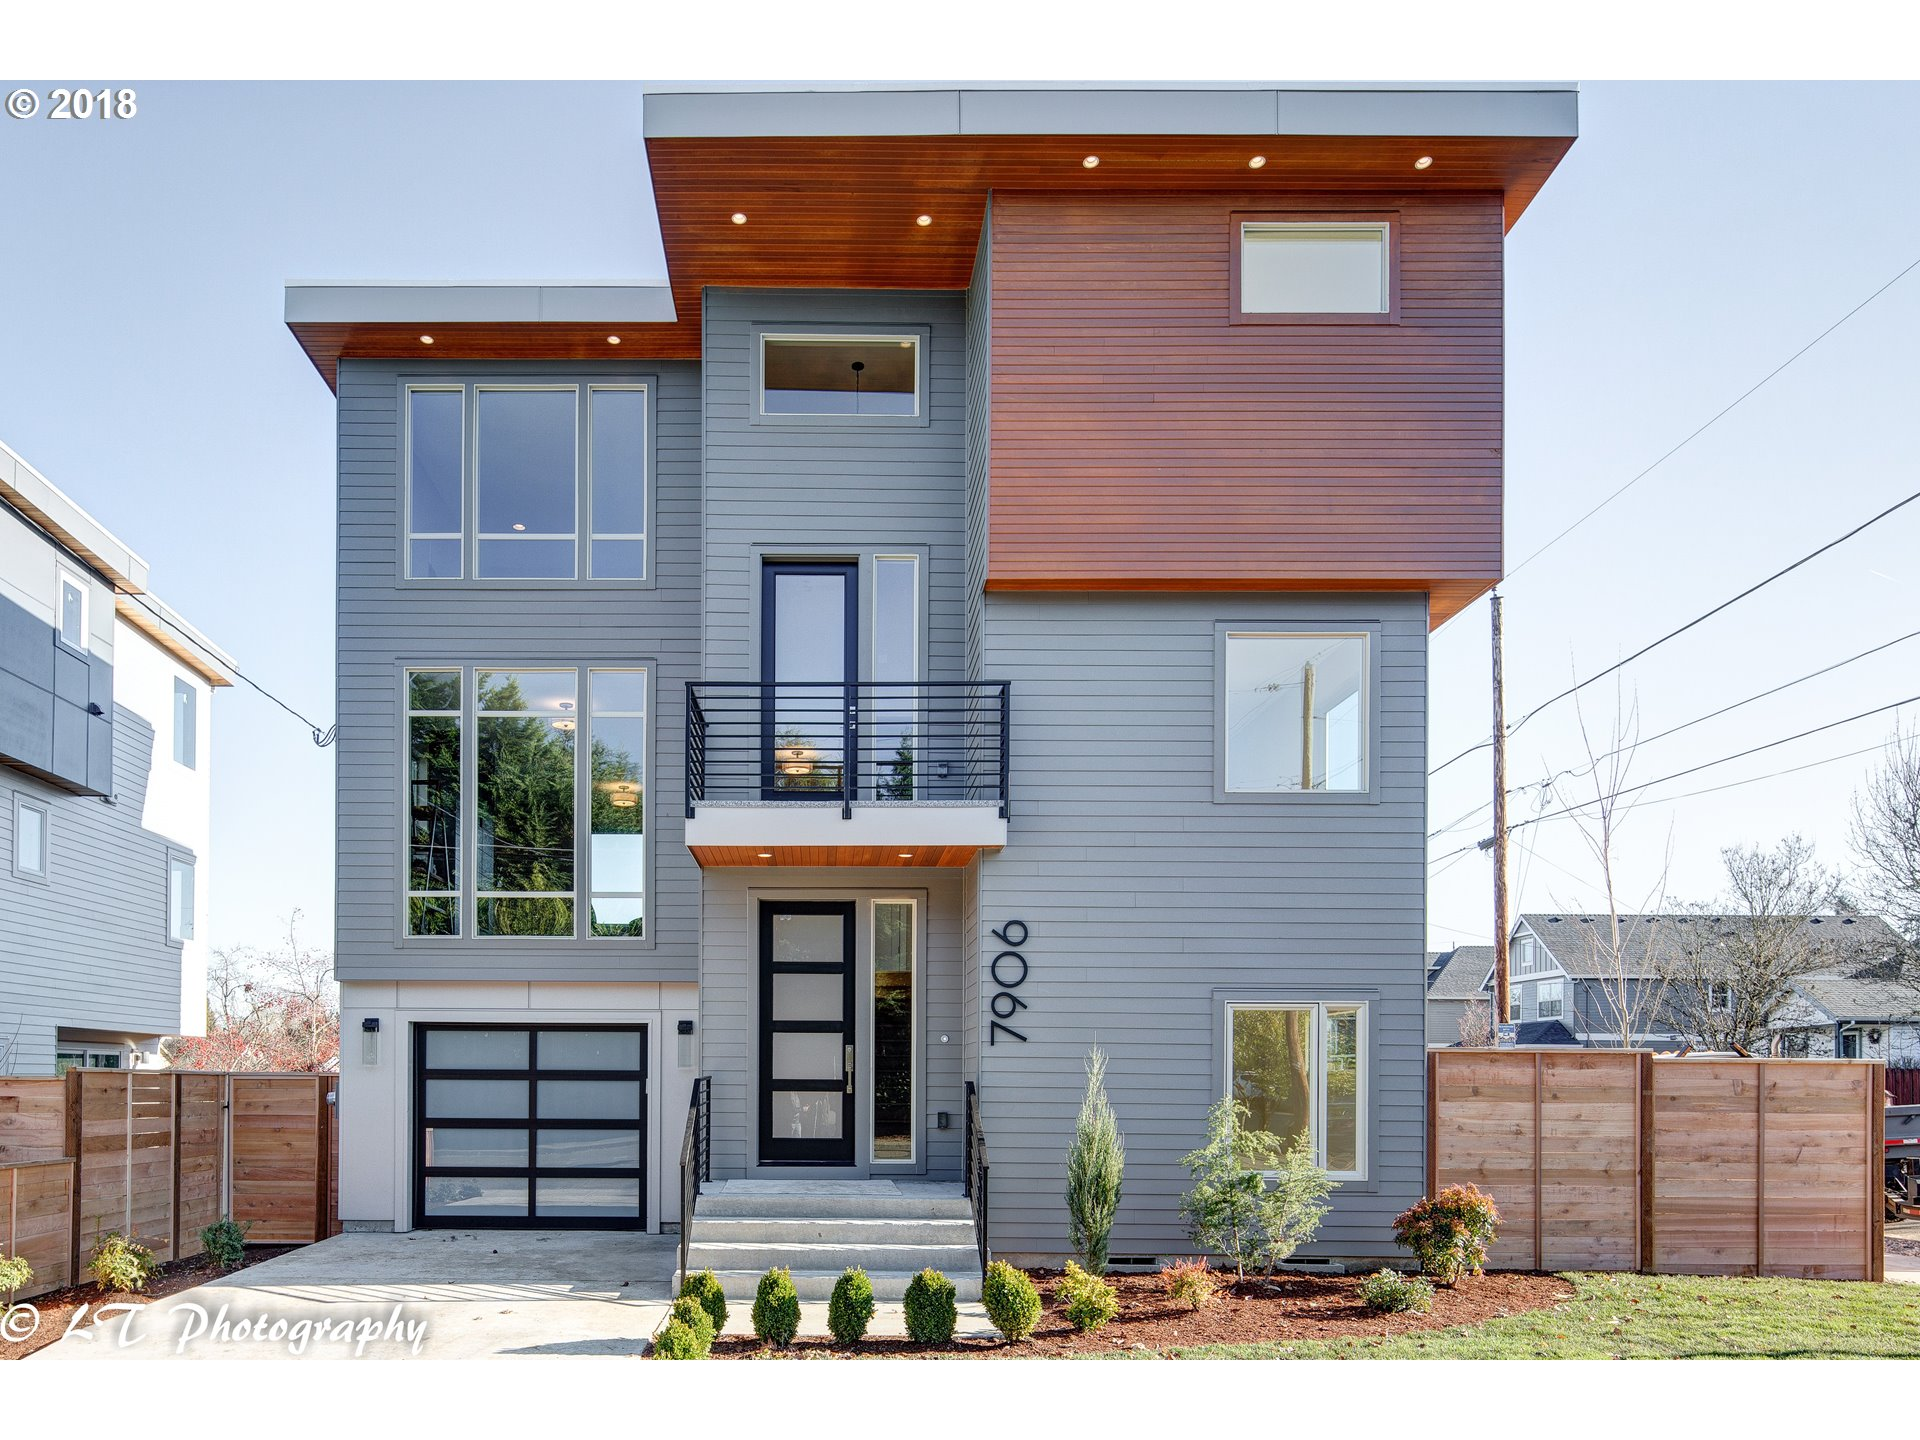 2325 sq. ft 4 bedrooms 3 bathrooms  House For Sale, Portland, OR